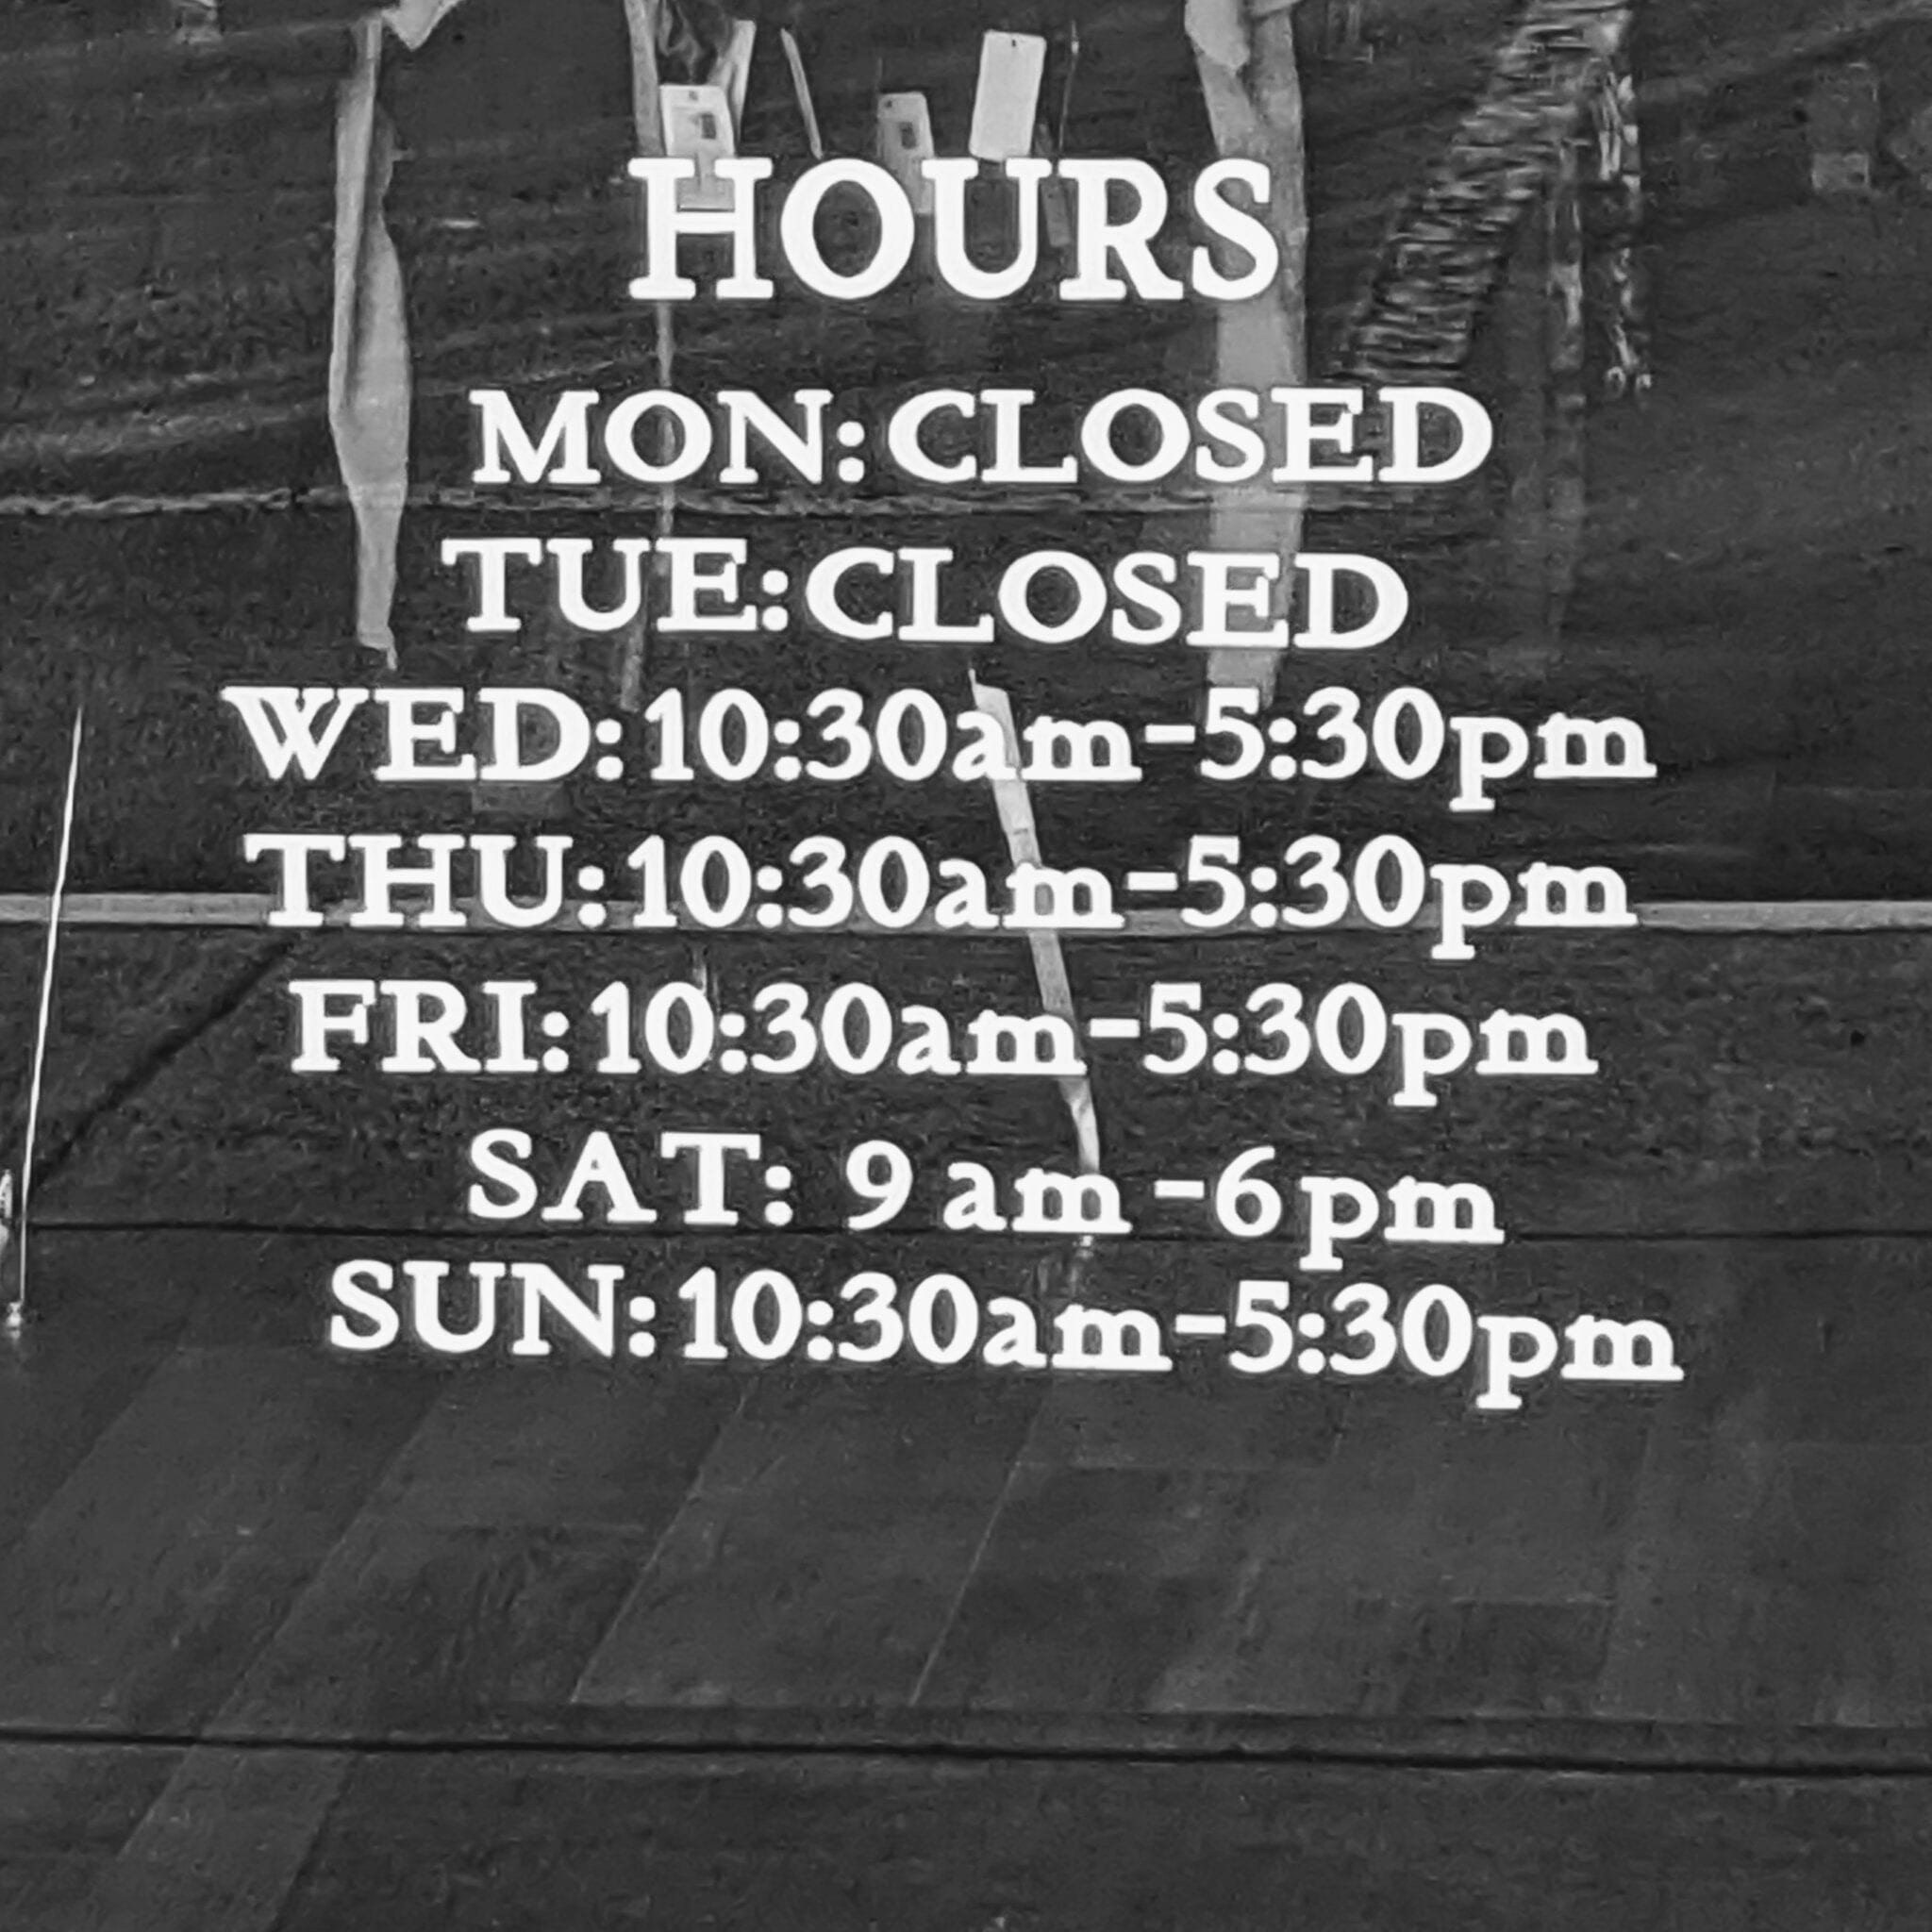 New Hours as of 9/27/2020